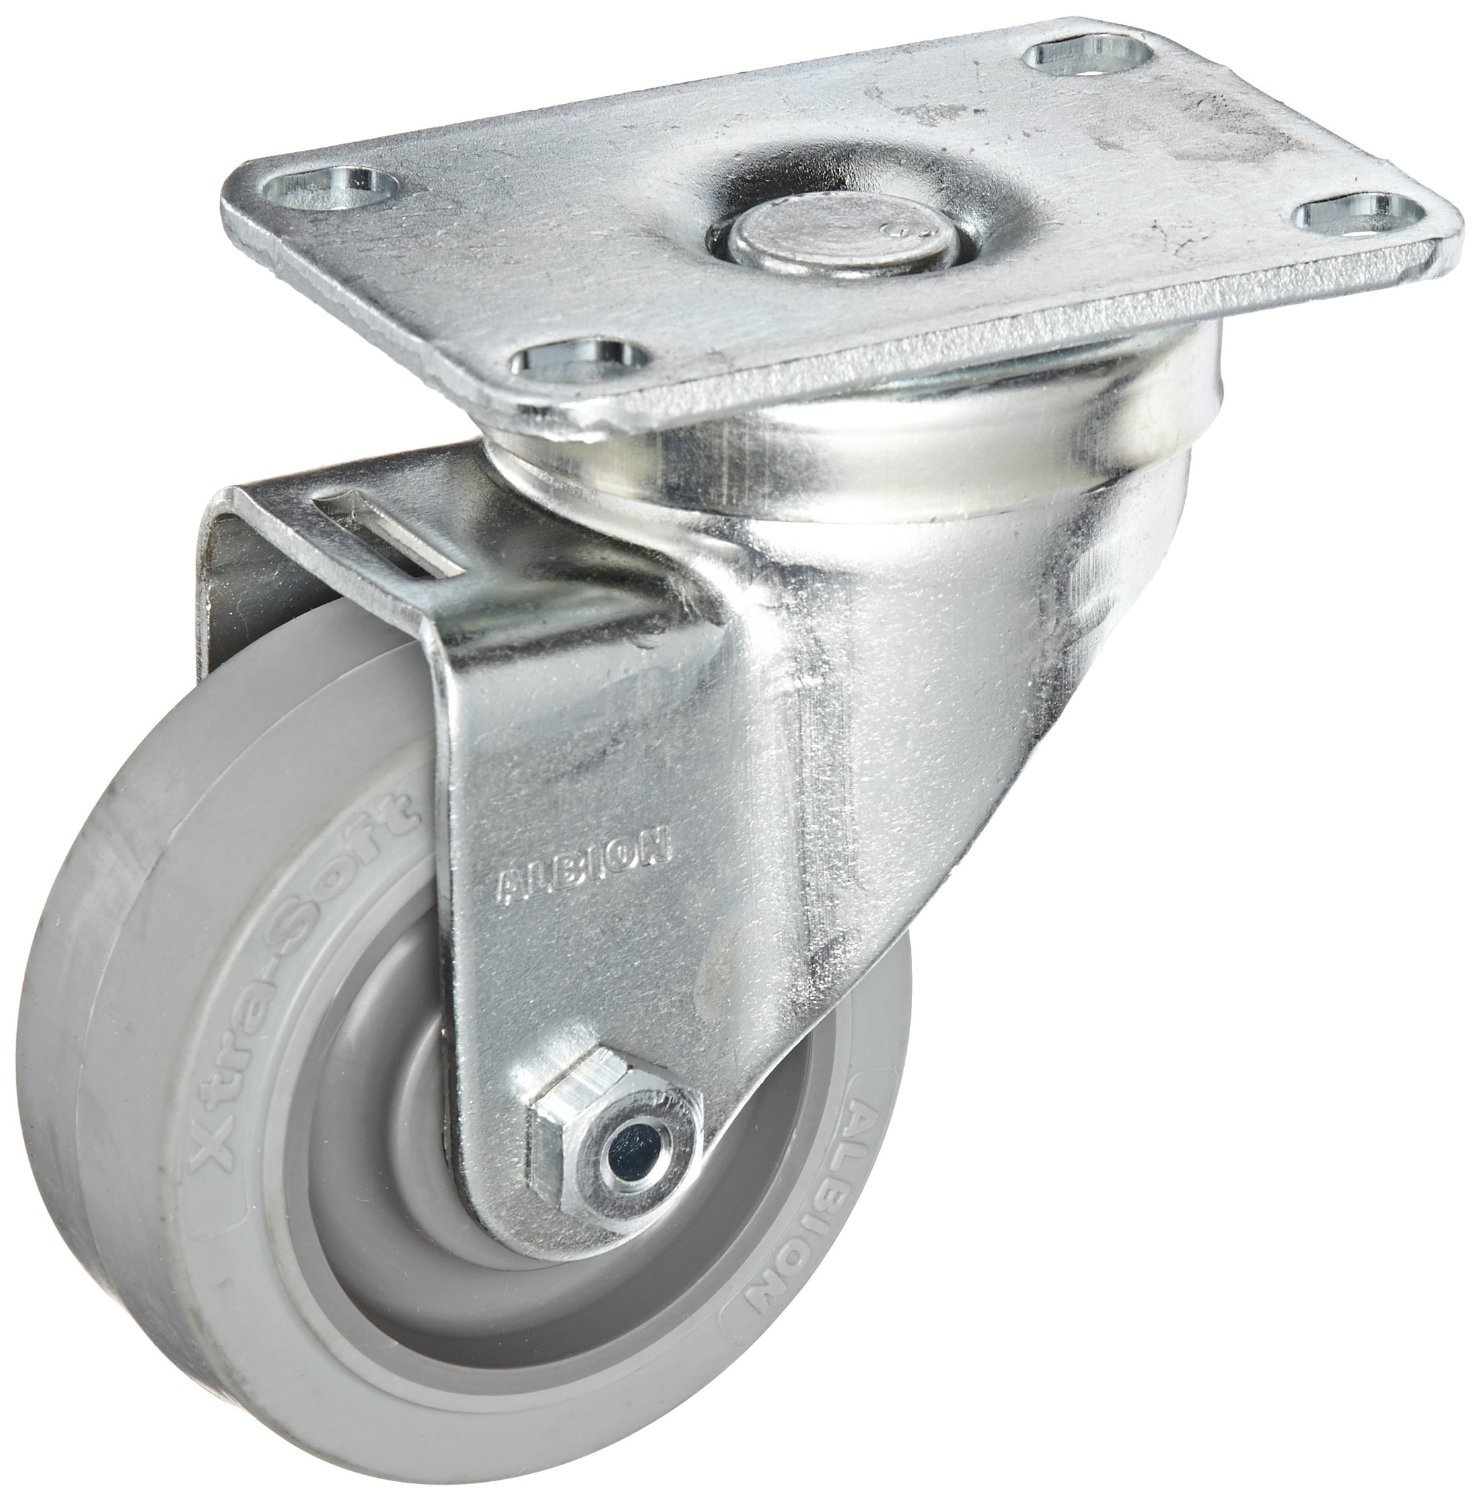 Albion 04XS03051S 3'' Diameter X-tra Soft Rubber Wheel Light Duty Stainless Steel Swivel Plate Caster, Flat Tread, Two Piece Delrin Bearing, 3-5/8'' Length x 2-1/2'' Width Base Plate, 200 lb. Capacity by Albion